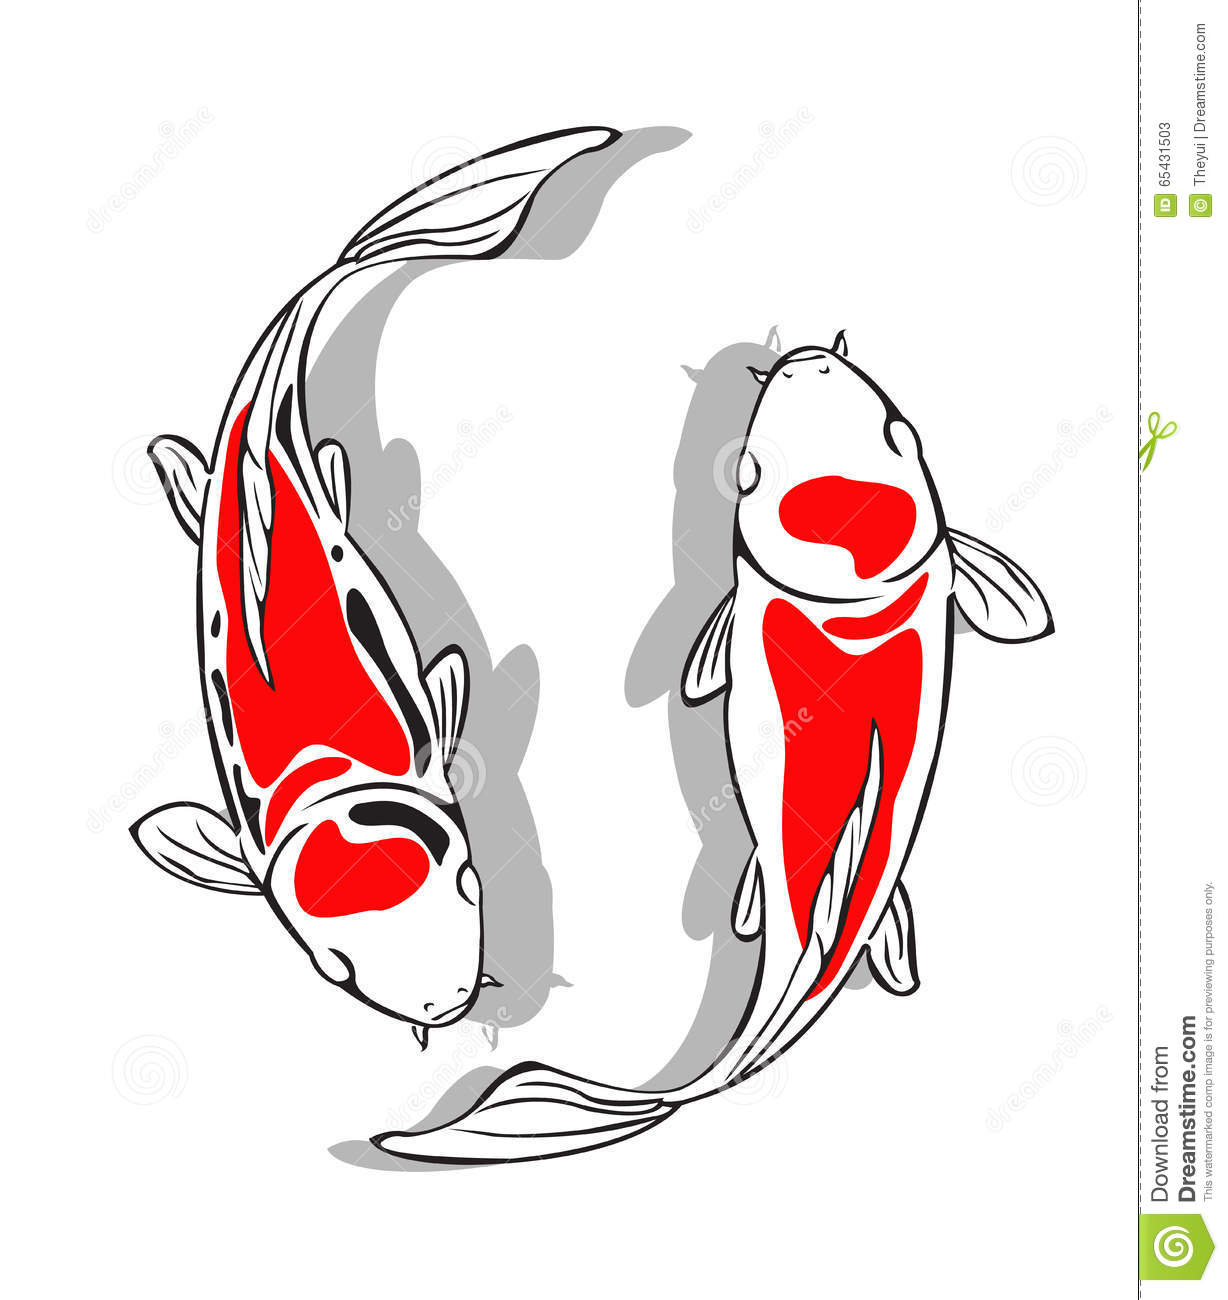 Koi fish vector design stock vector illustration of swim for Koi fish vector